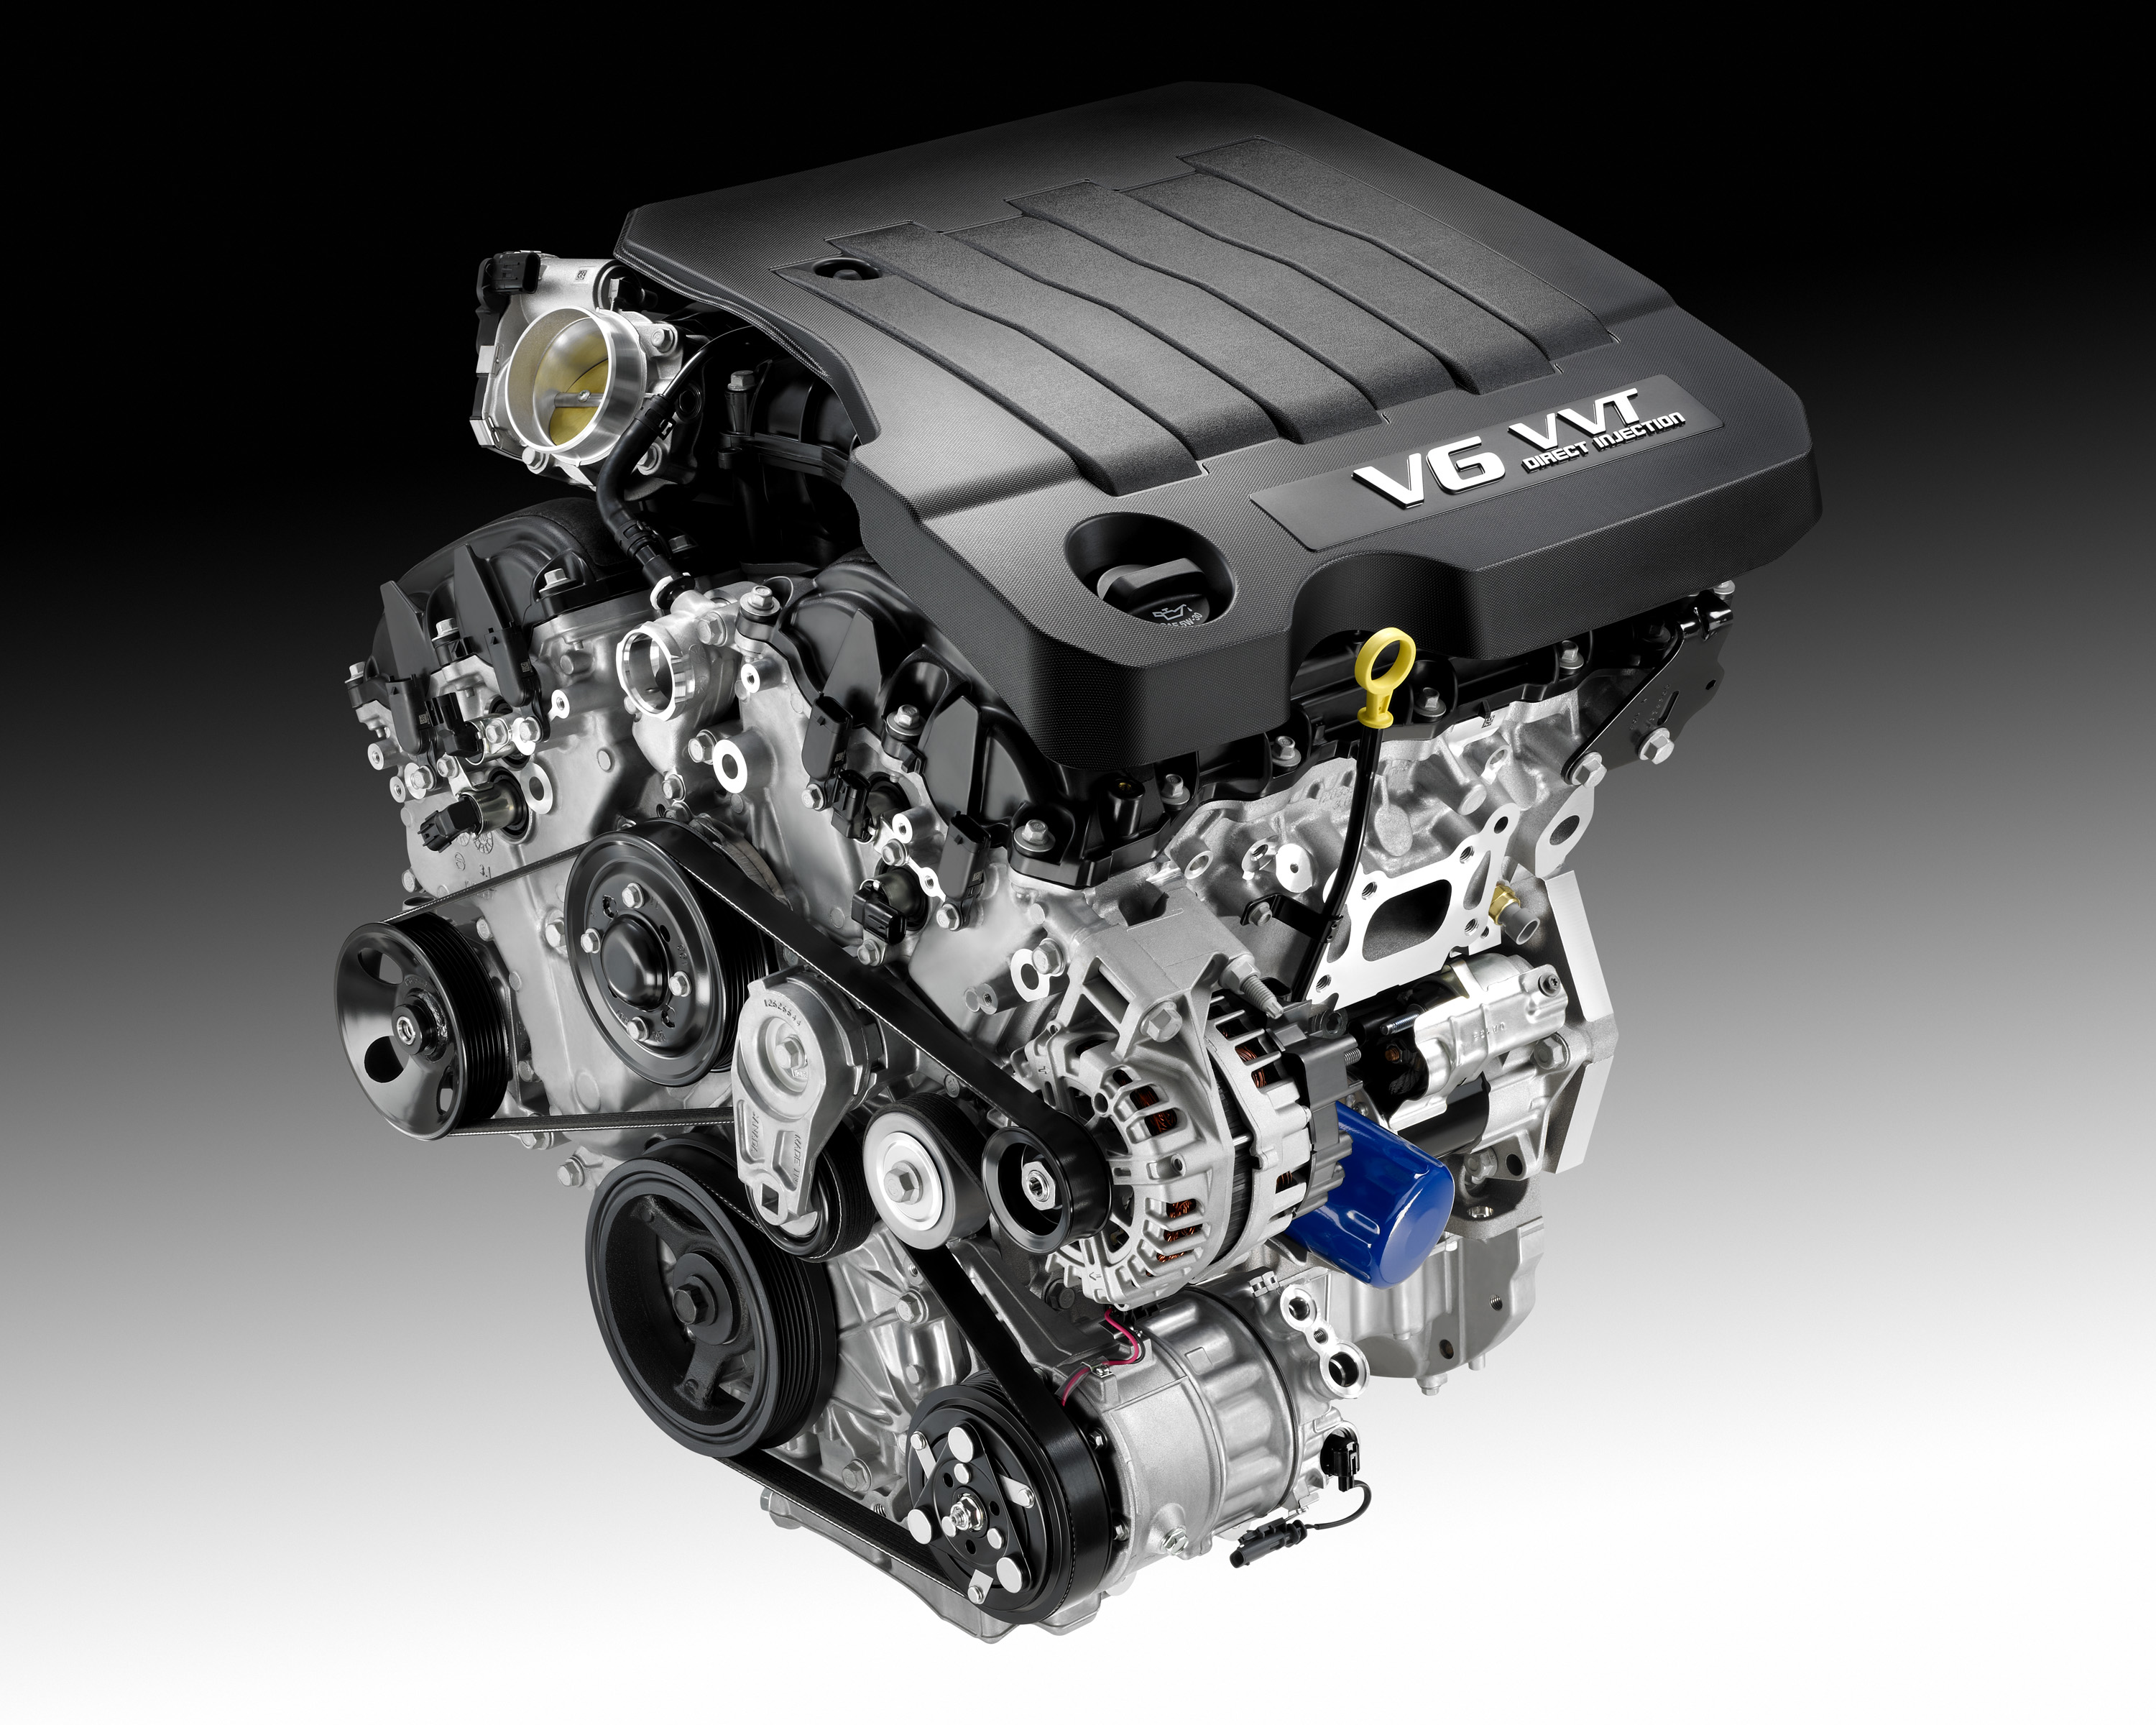 2013 Buick Lacrosse Engine Diagram On Images Free Download Diagrams New V 6 Delivers Horsepower Boost To 2012